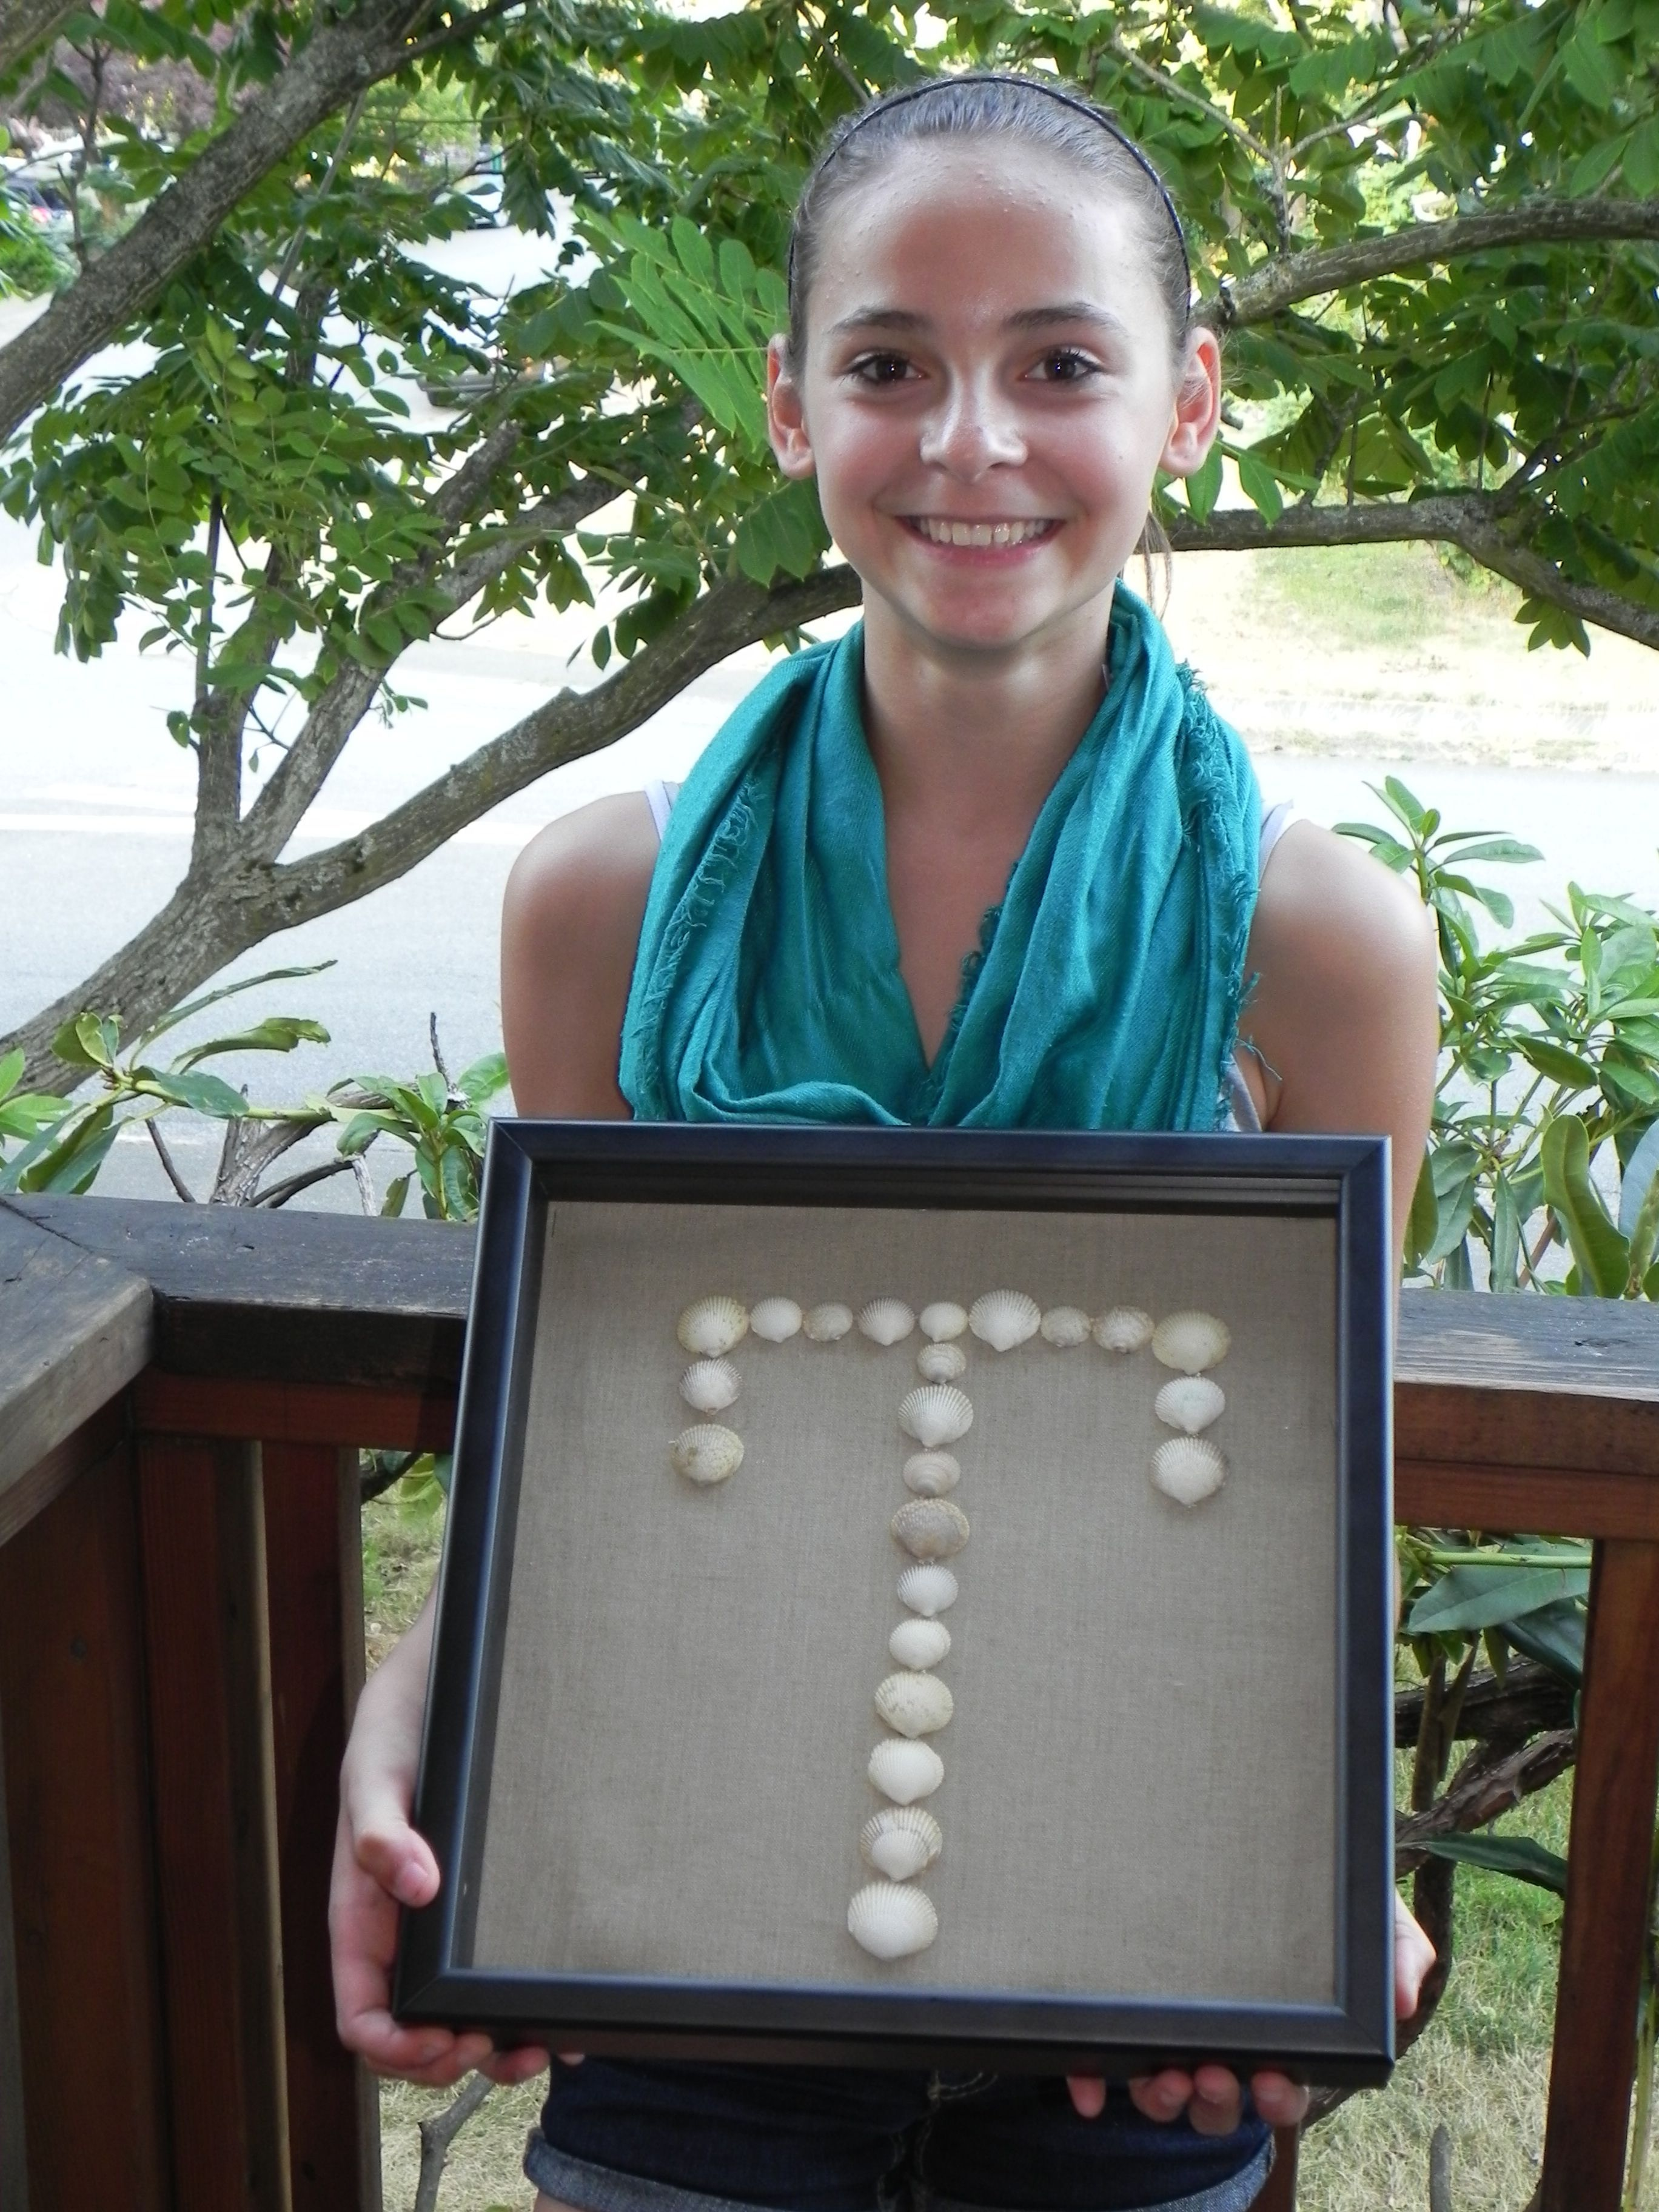 Check out my latest project: Personalized Seashell Monograms.